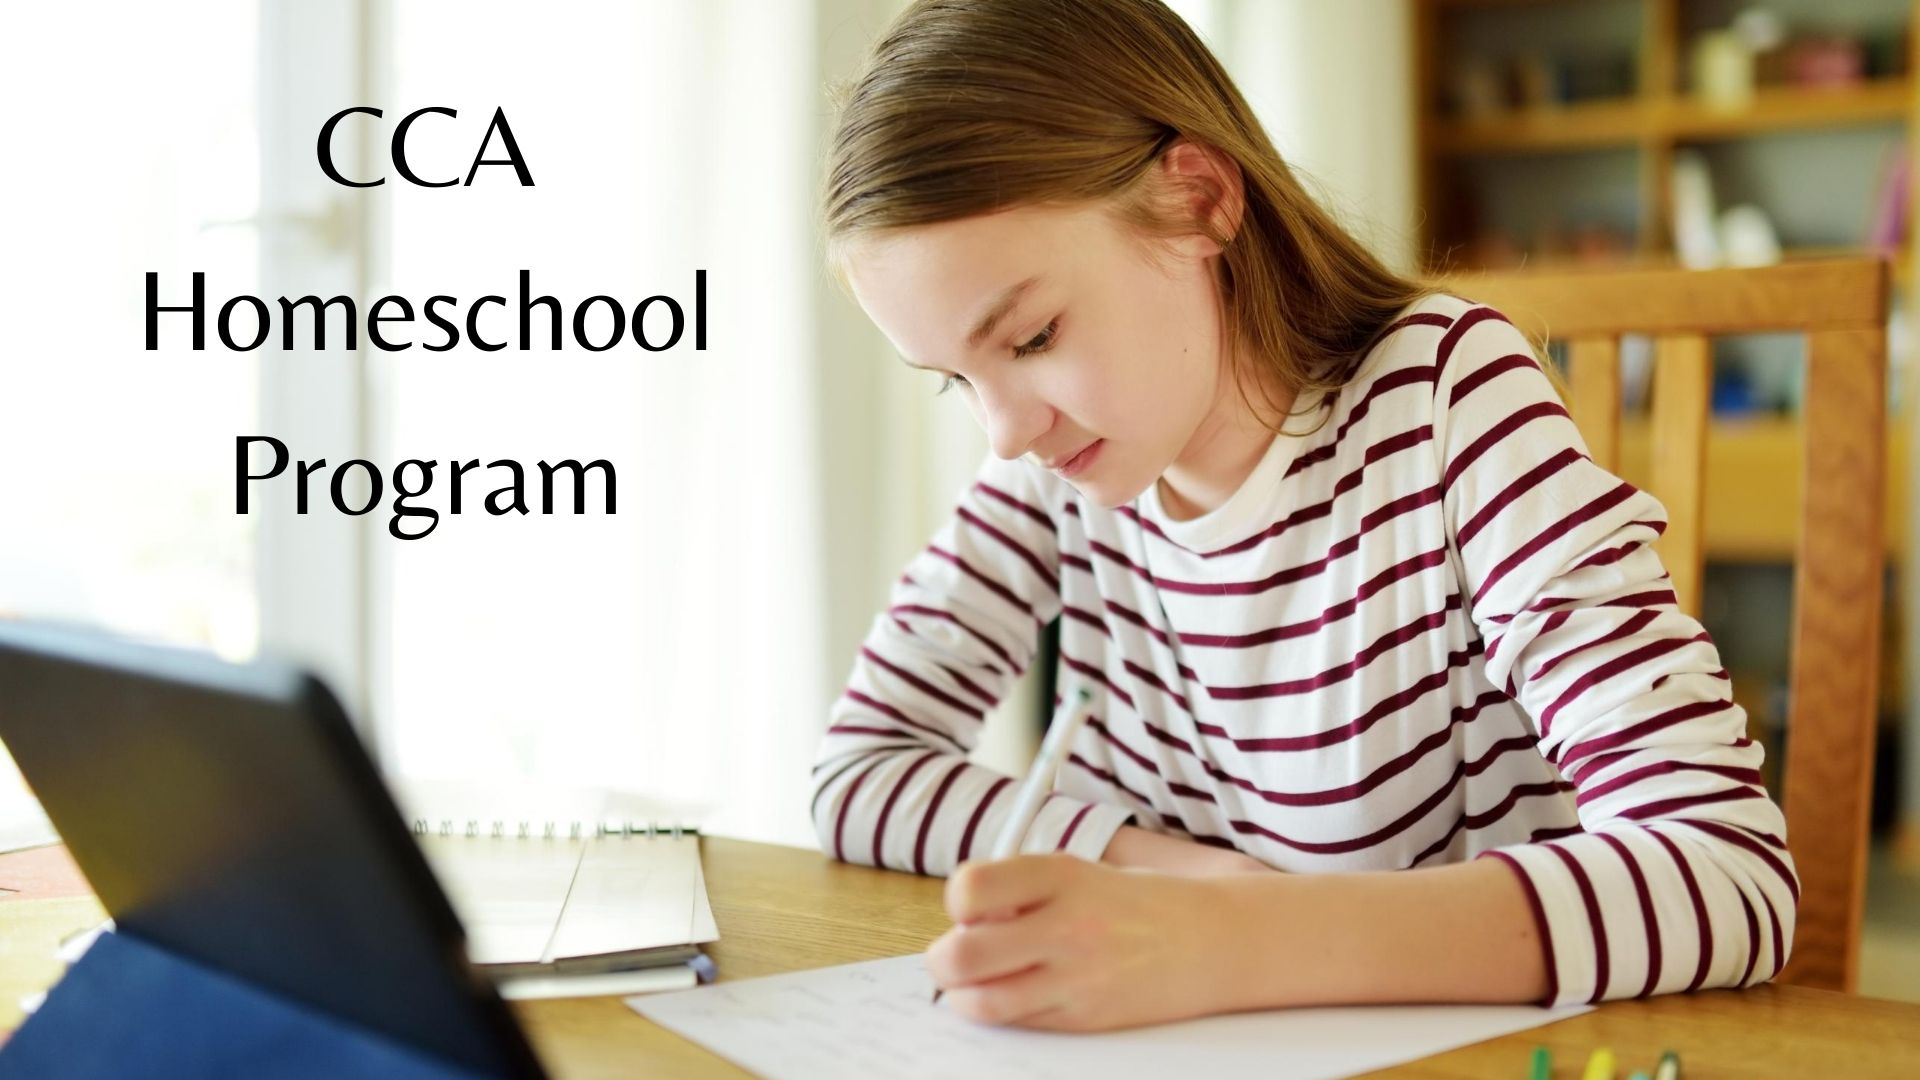 CCA Homeschool Program graphic